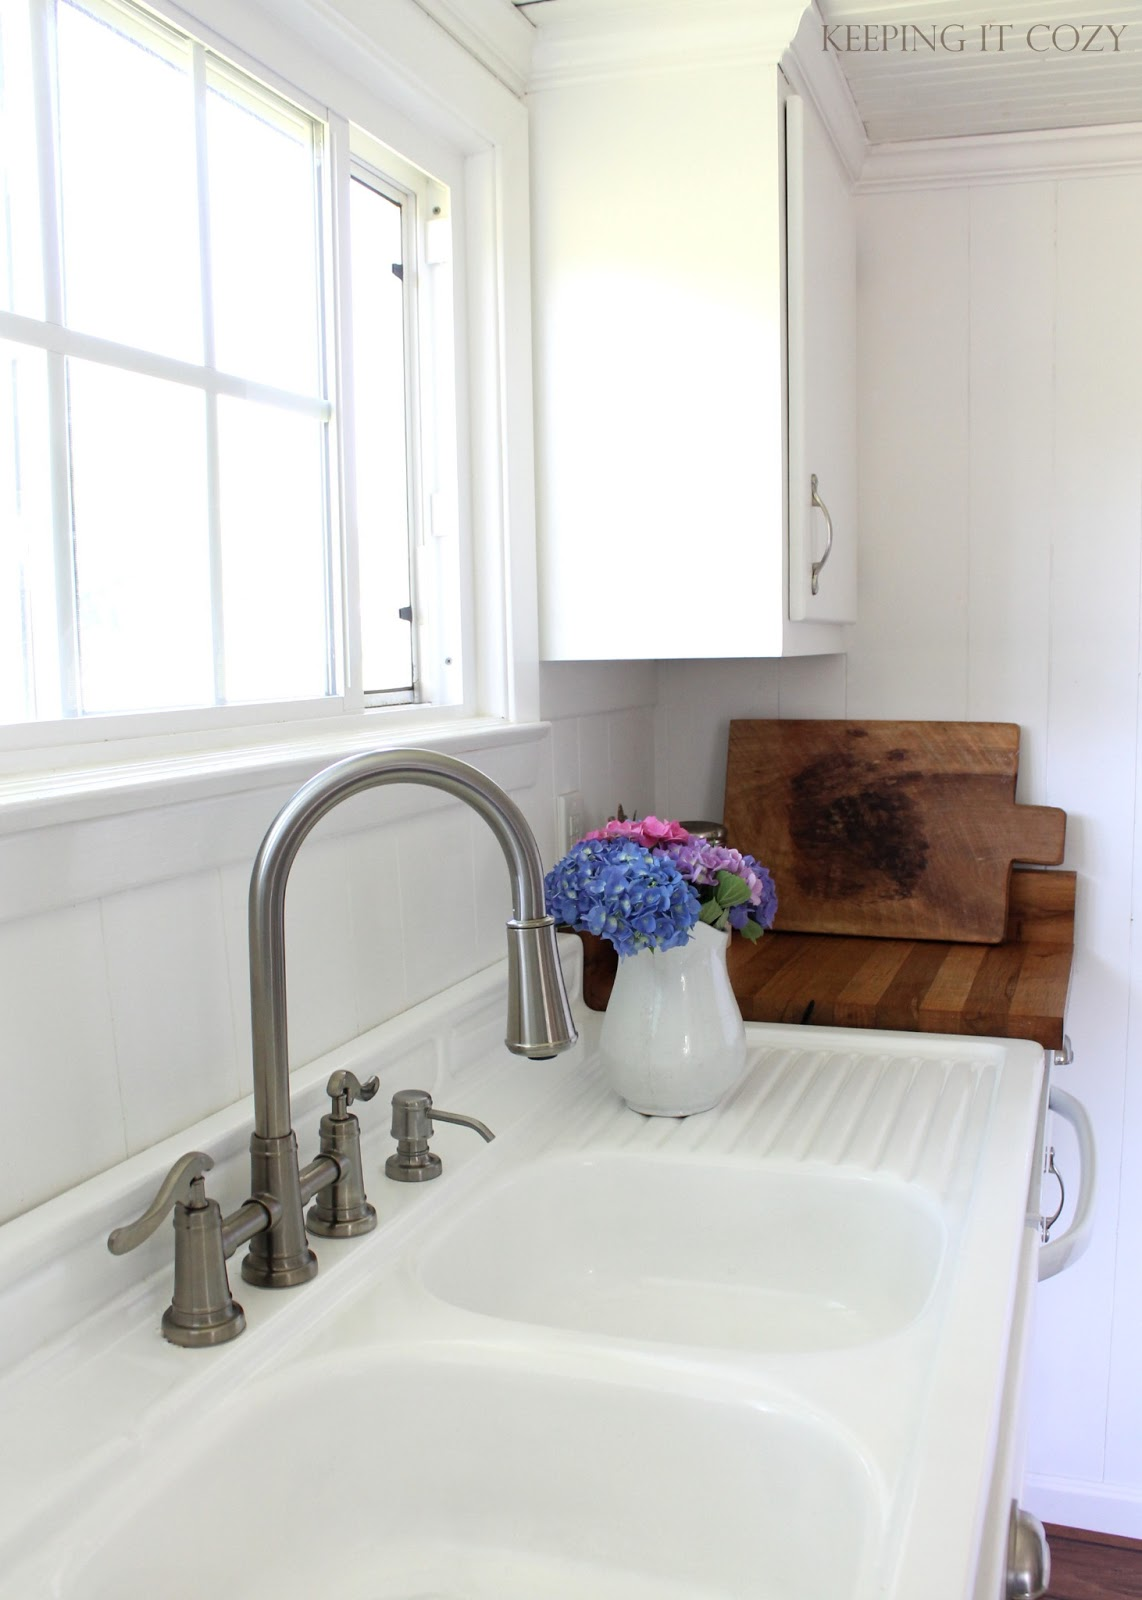 Keeping It Cozy: Kitchen Update: The Sink Area